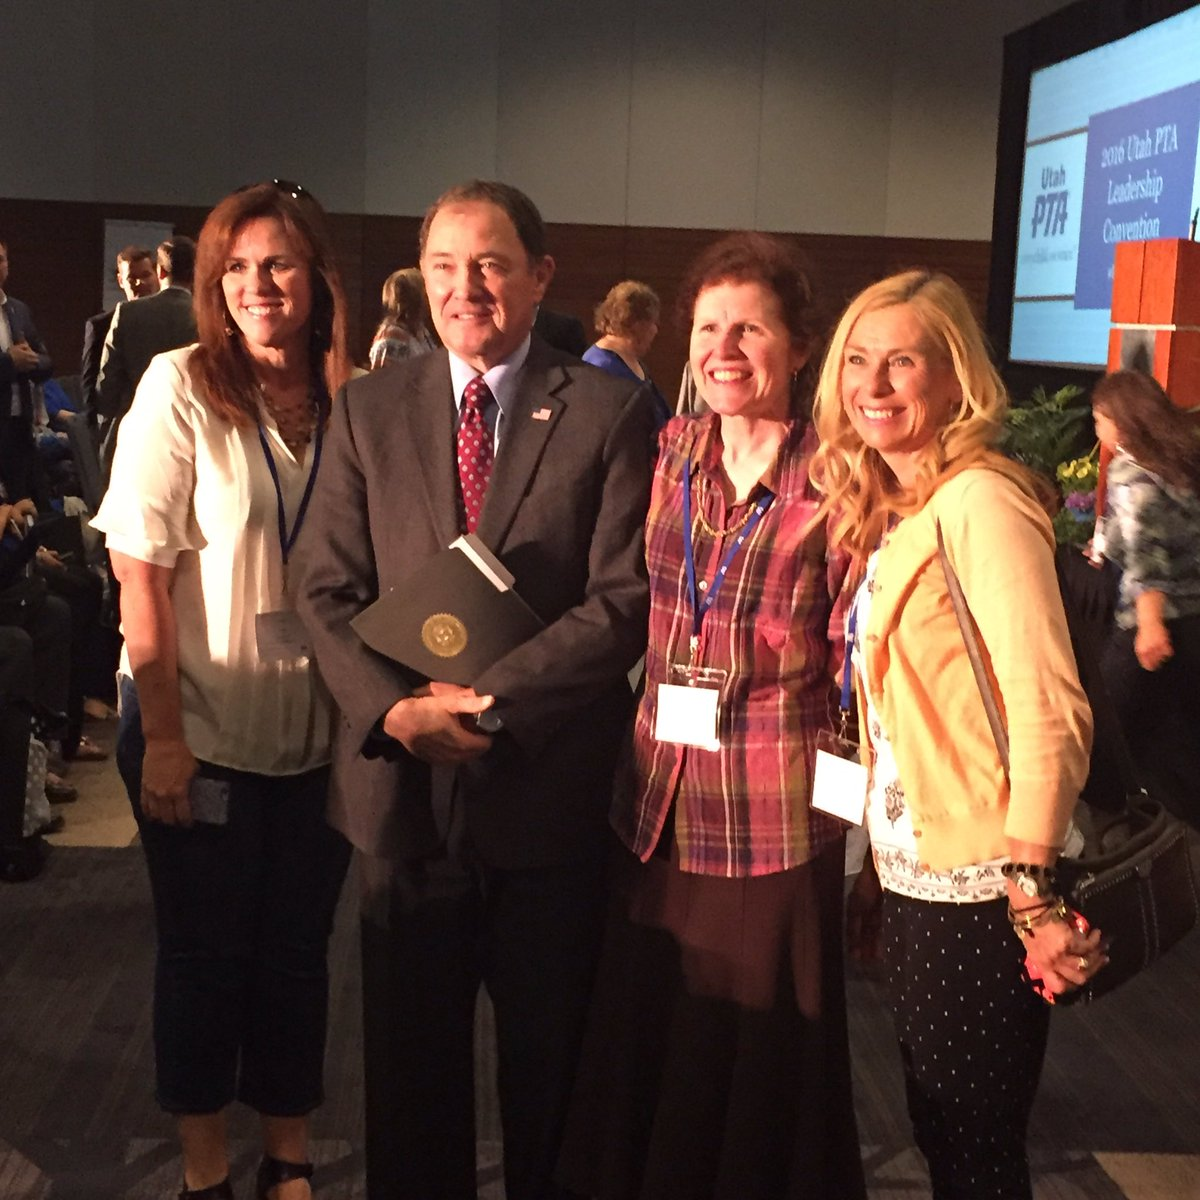 So happy to have @GovHerbert with us for #UTPTA2016 convention. #utpol #yesonB https://t.co/Hl3f41WFfU